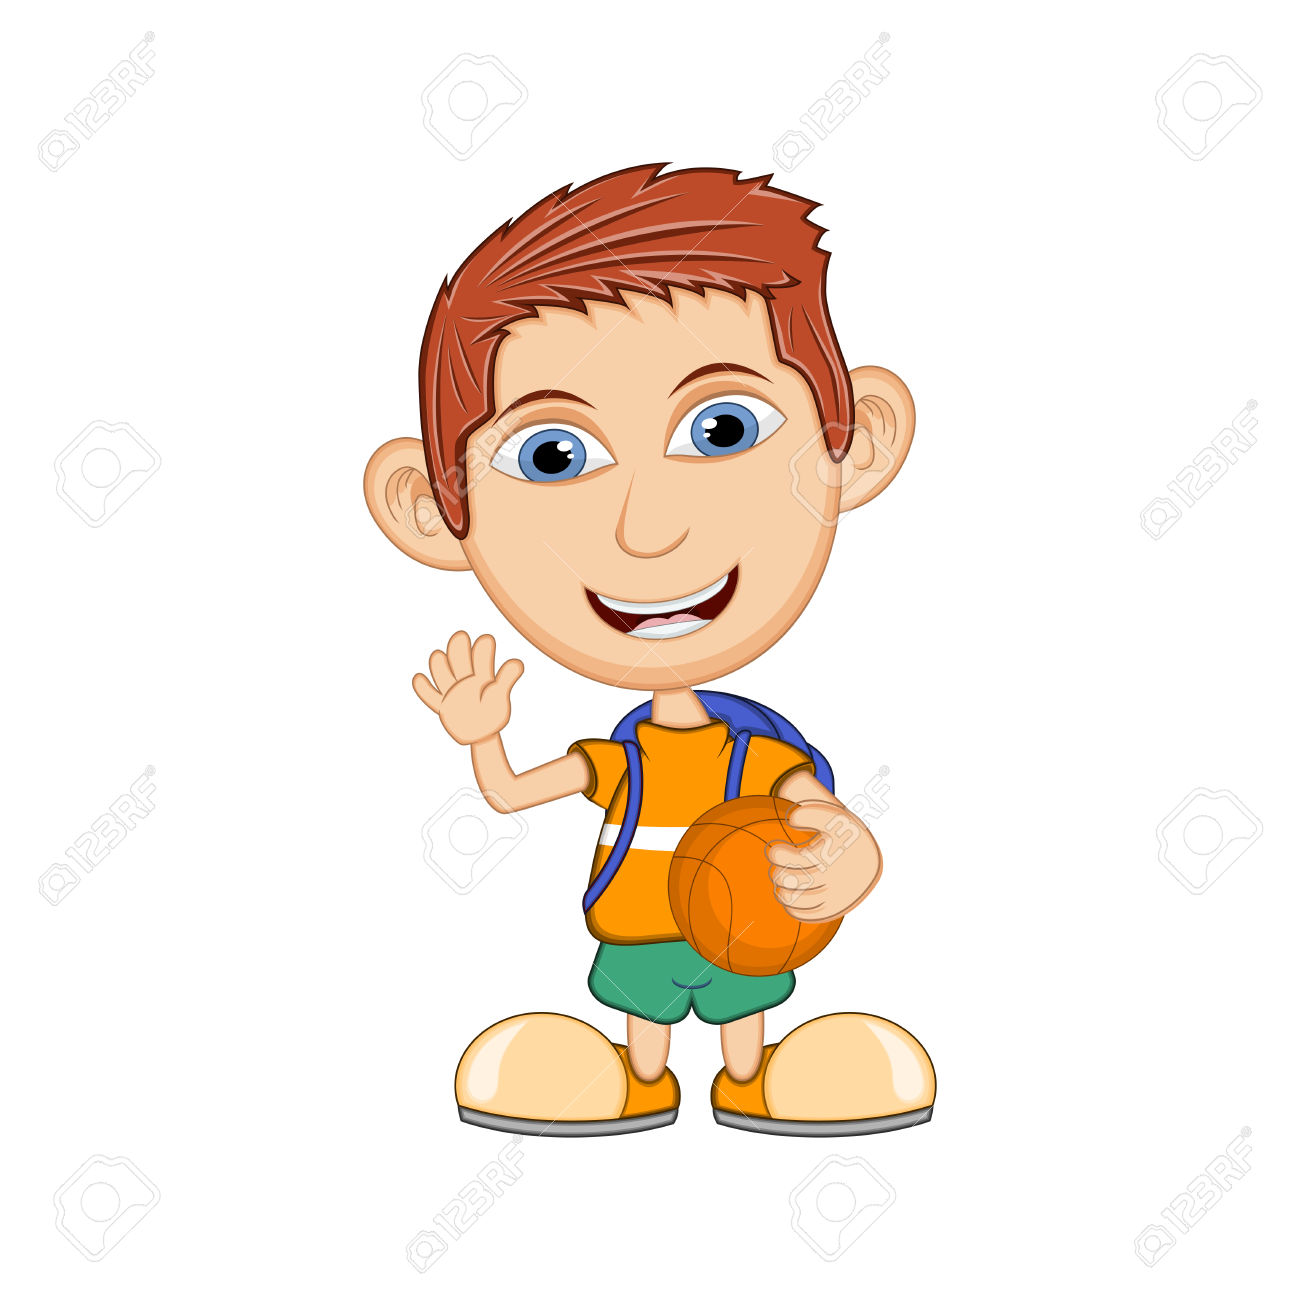 The Boy Playing Basketball Cartoon Vector Illustration Royalty.